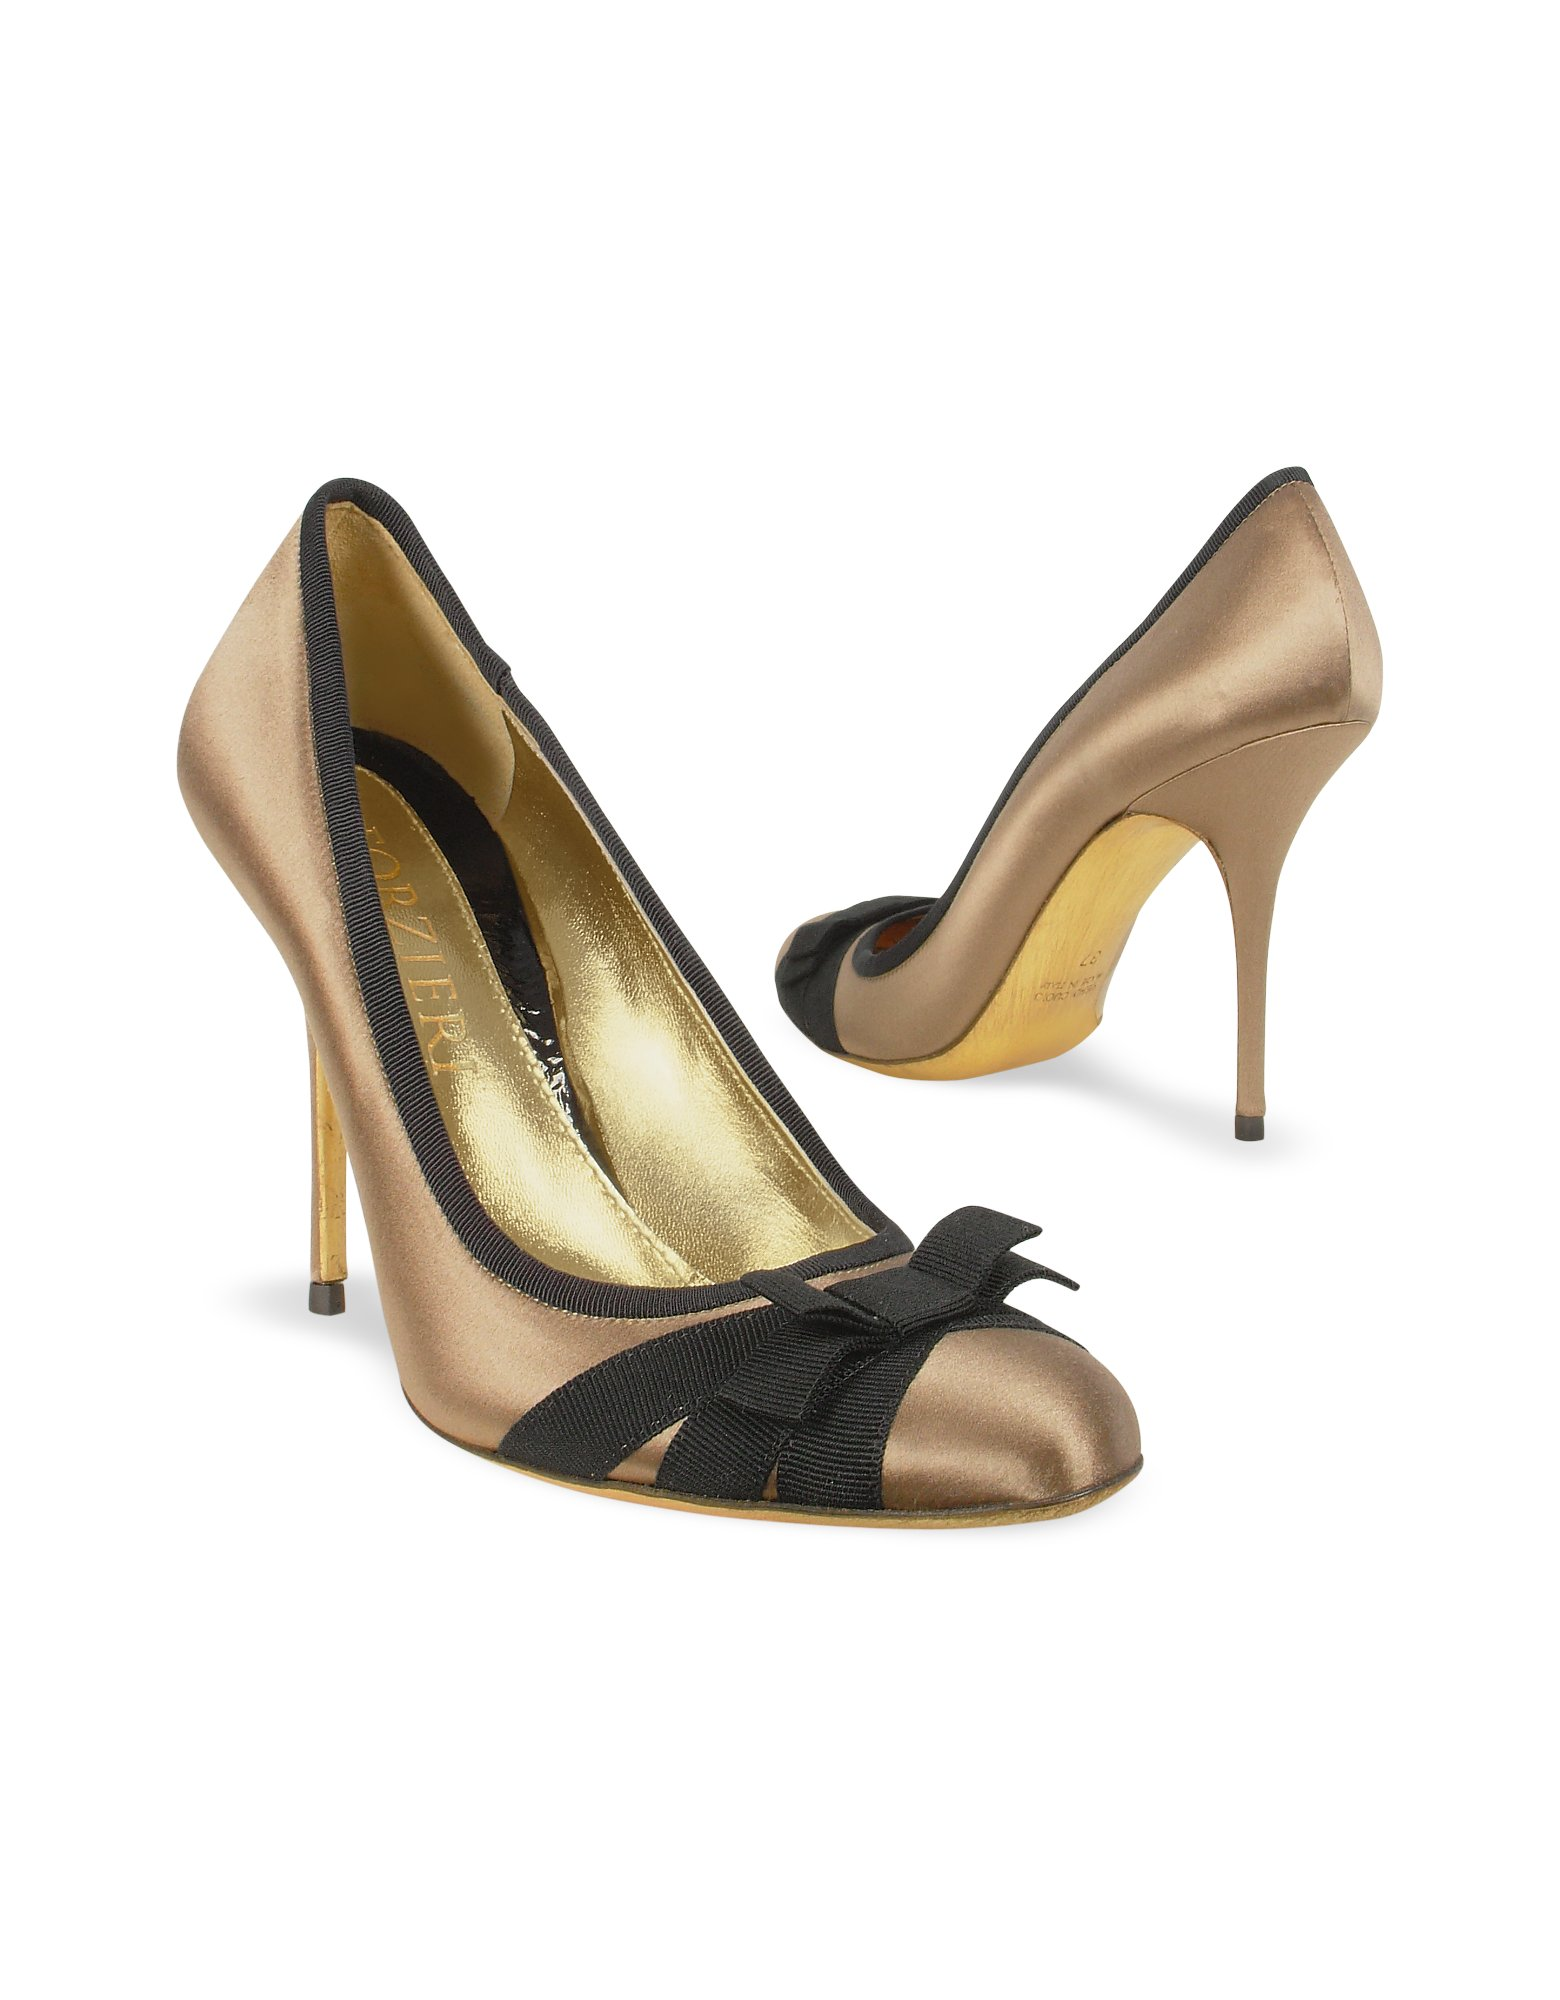 forzieri black bow taupe satin and leather shoes in